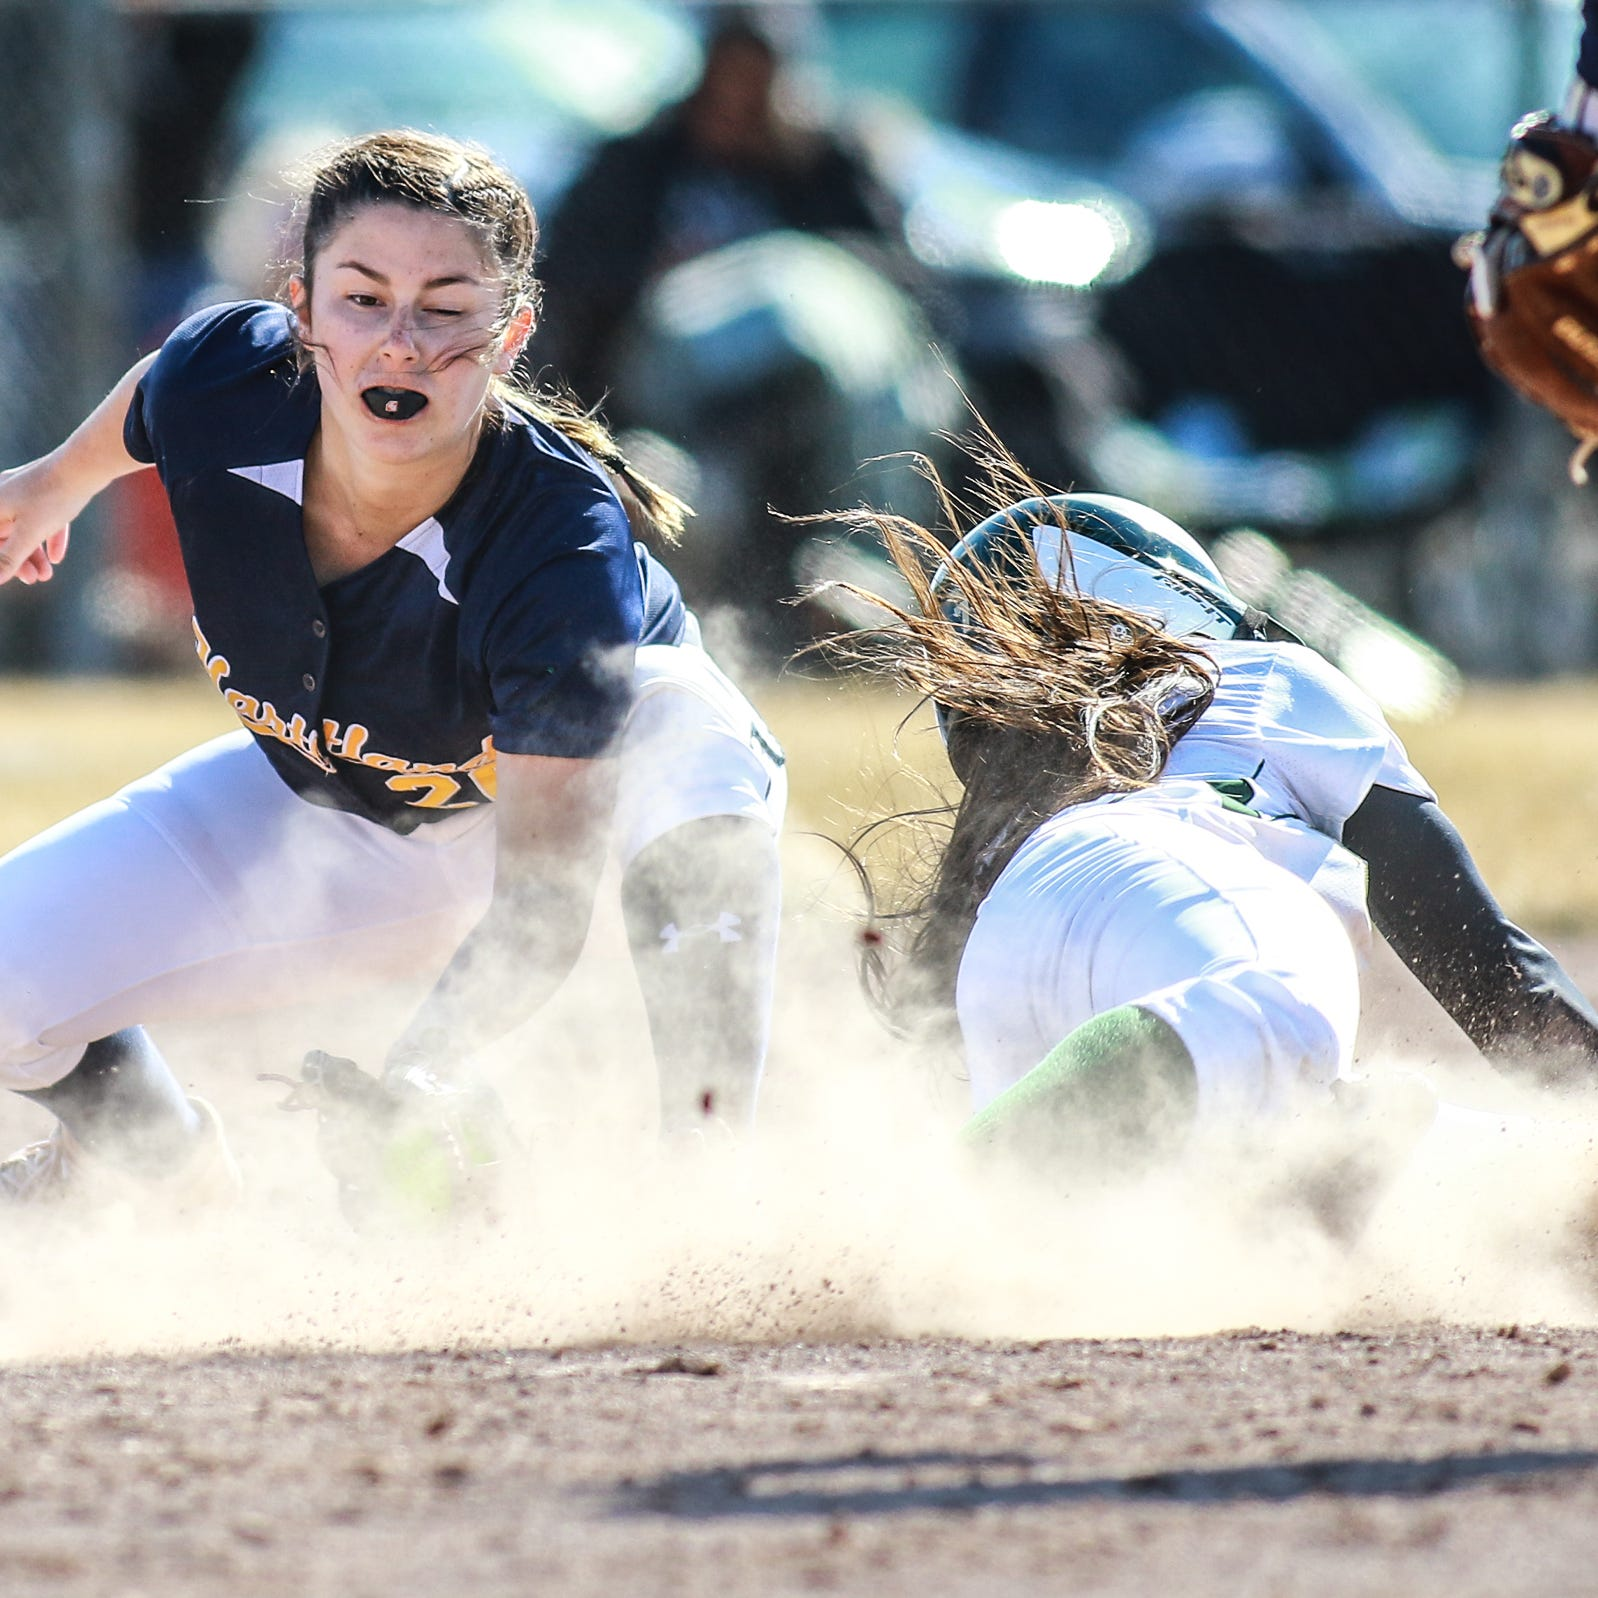 Last year's overlooked freshman makes game-saving play for Hartland softball at Howell